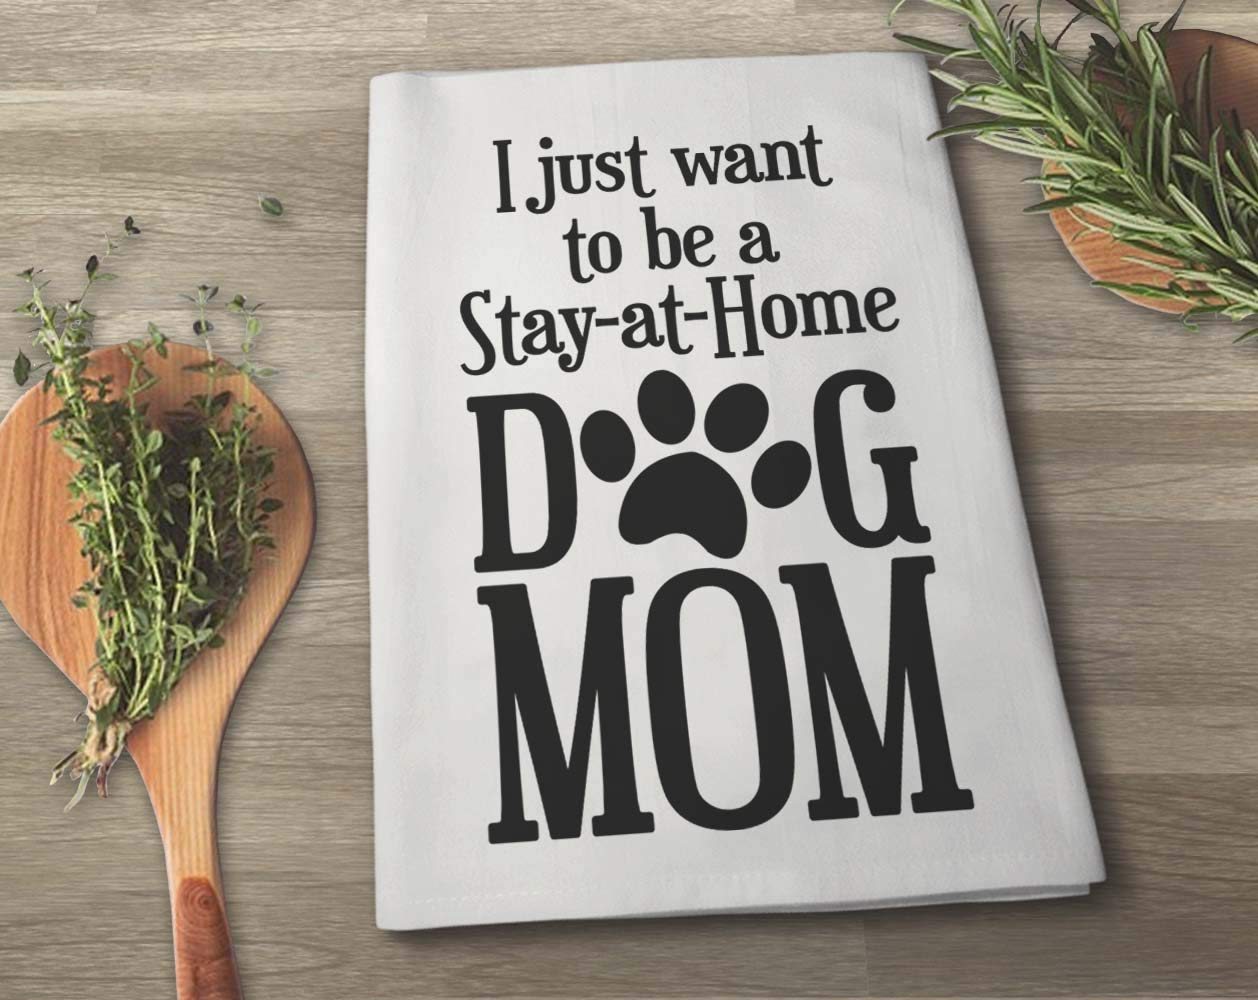 Highly Absorbent 100/% Cotton Multi-Purpose Kitchen Dish Towel 27 x 27 Inches Honey Dew Gifts I Just Want to be A Stay at Home Dog Mom Flour Sack Towel